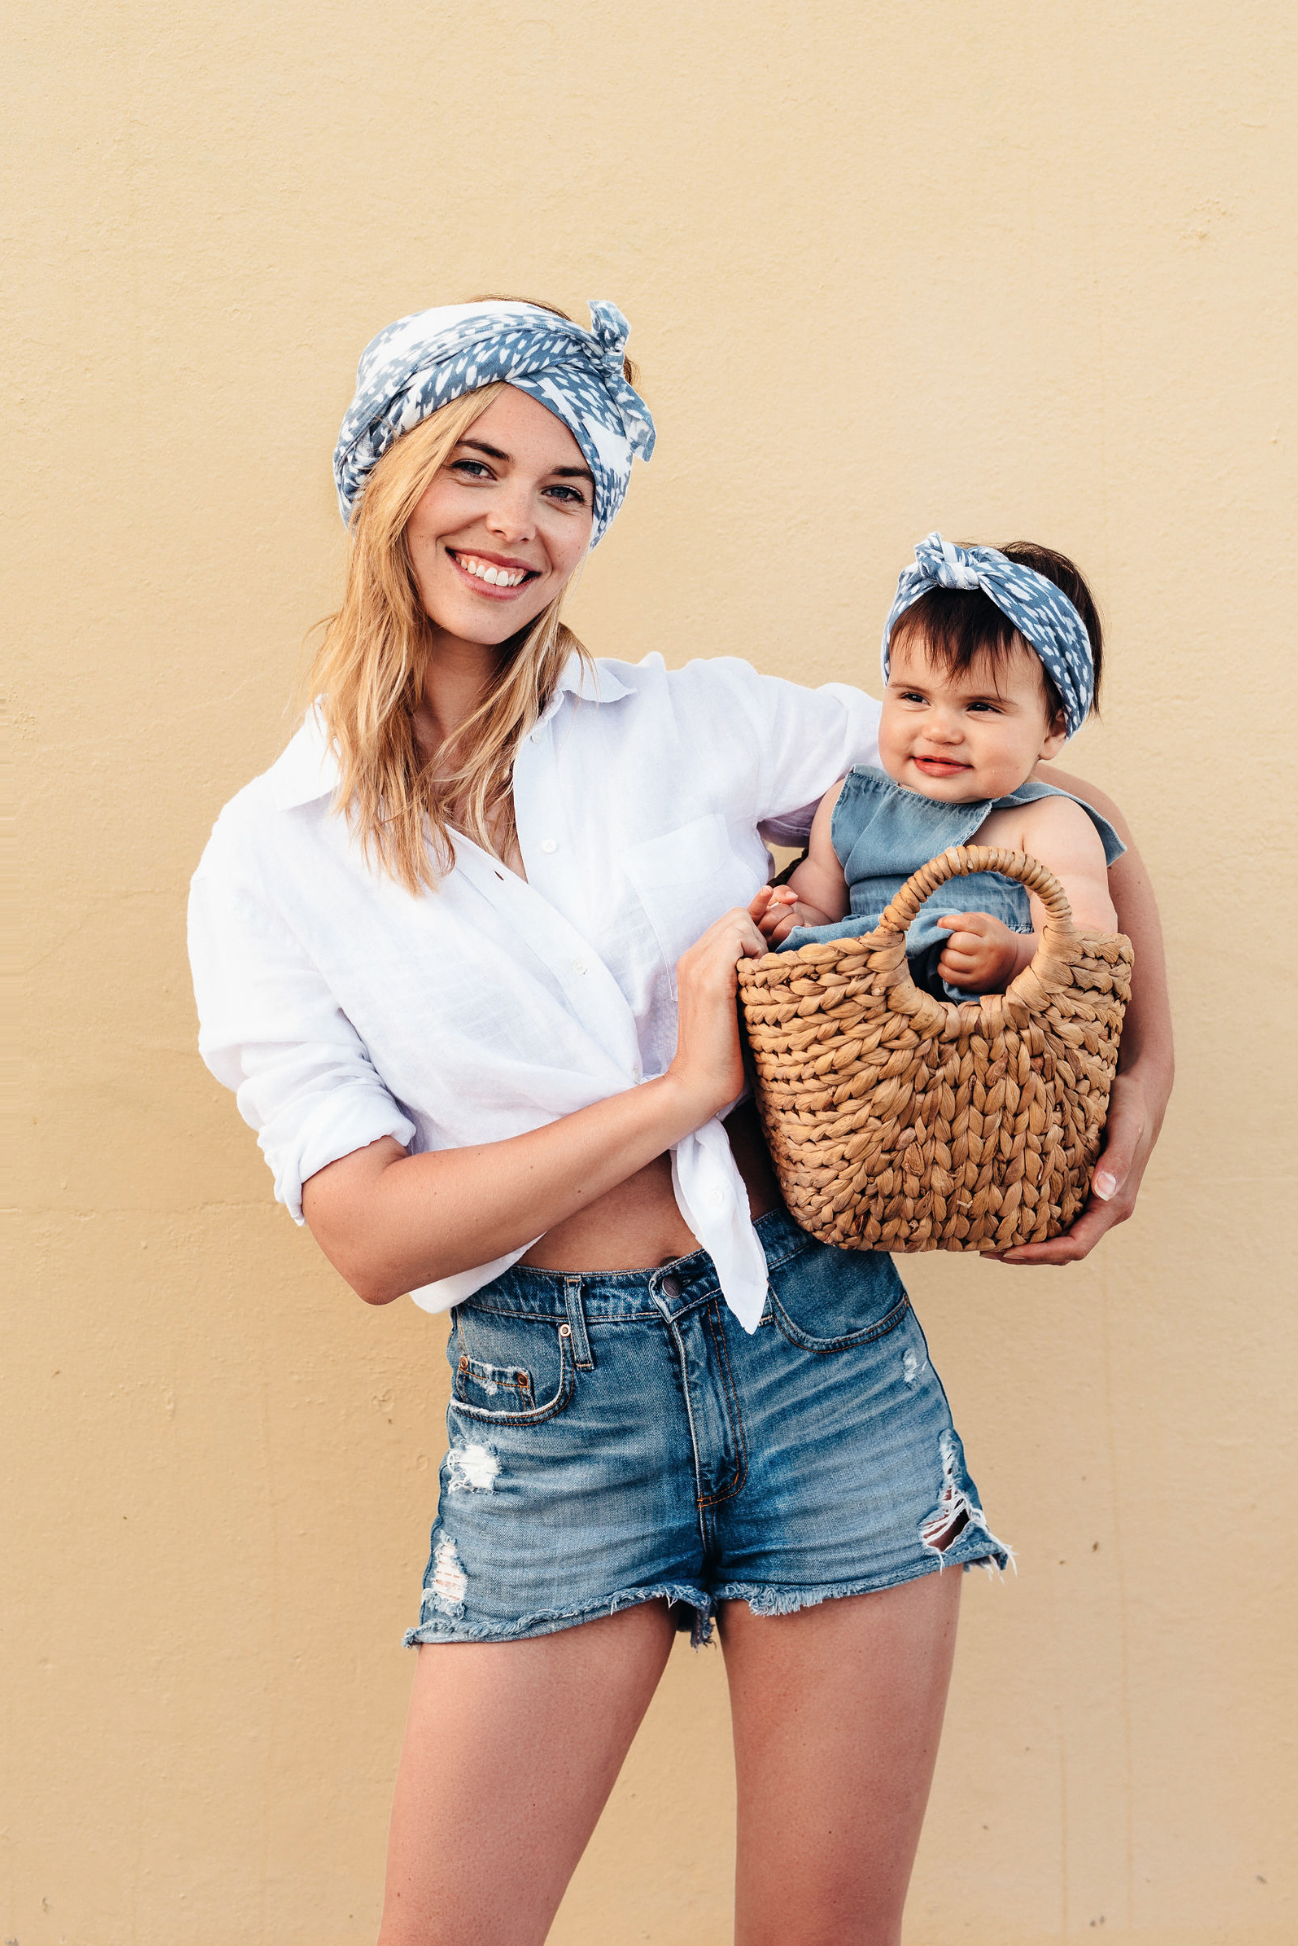 phoebe ghorayeb hey baby campaign 10.png